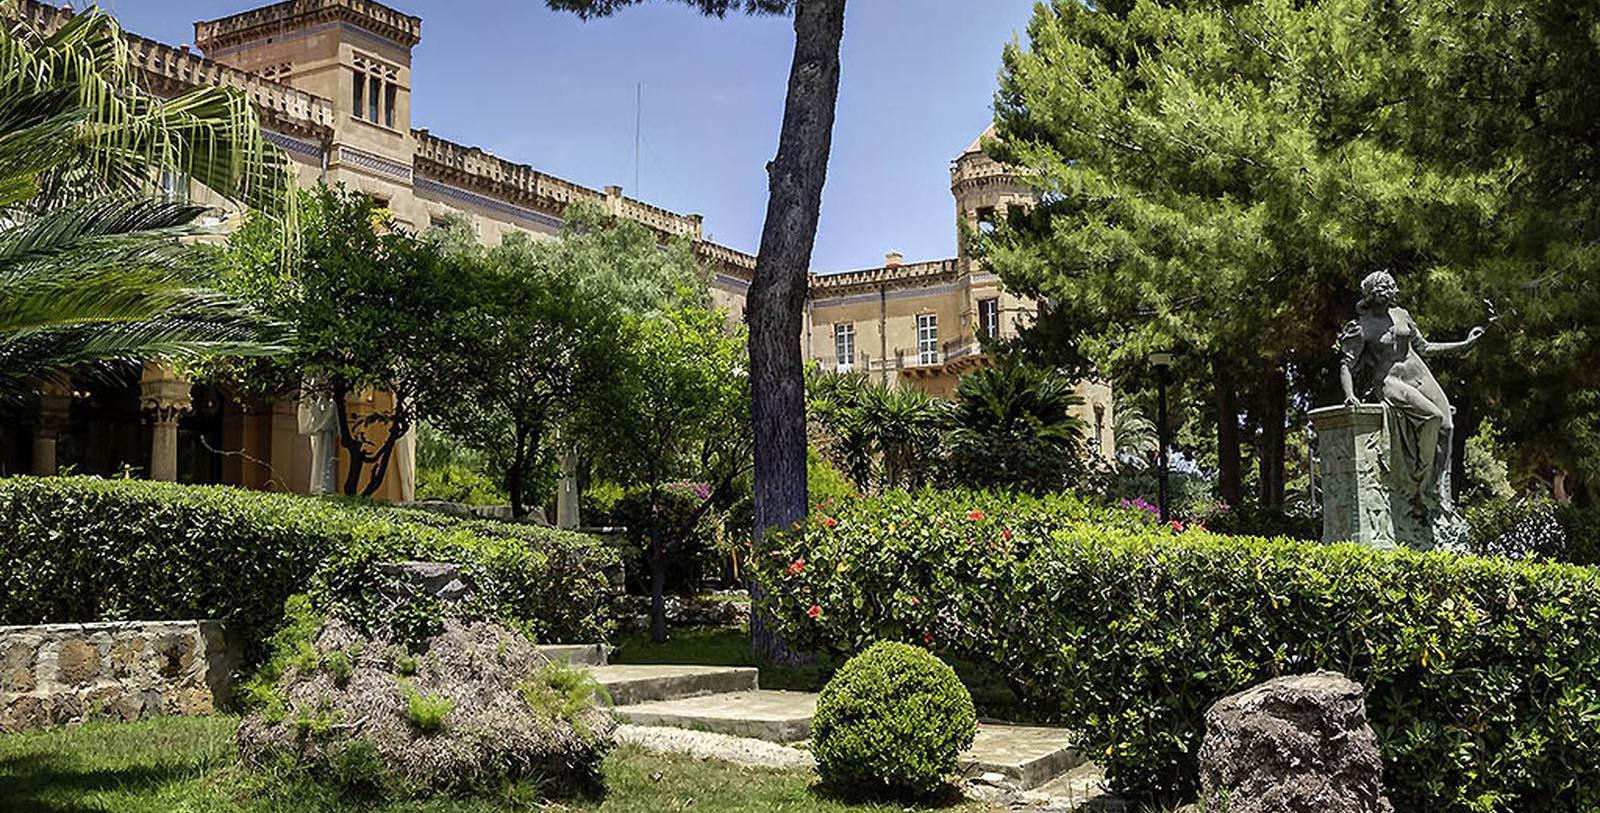 Daytime gardens and exterior of Grand Hotel Villa Igiea Palermo - MGallery by Sofitel in Palermo, Italy.